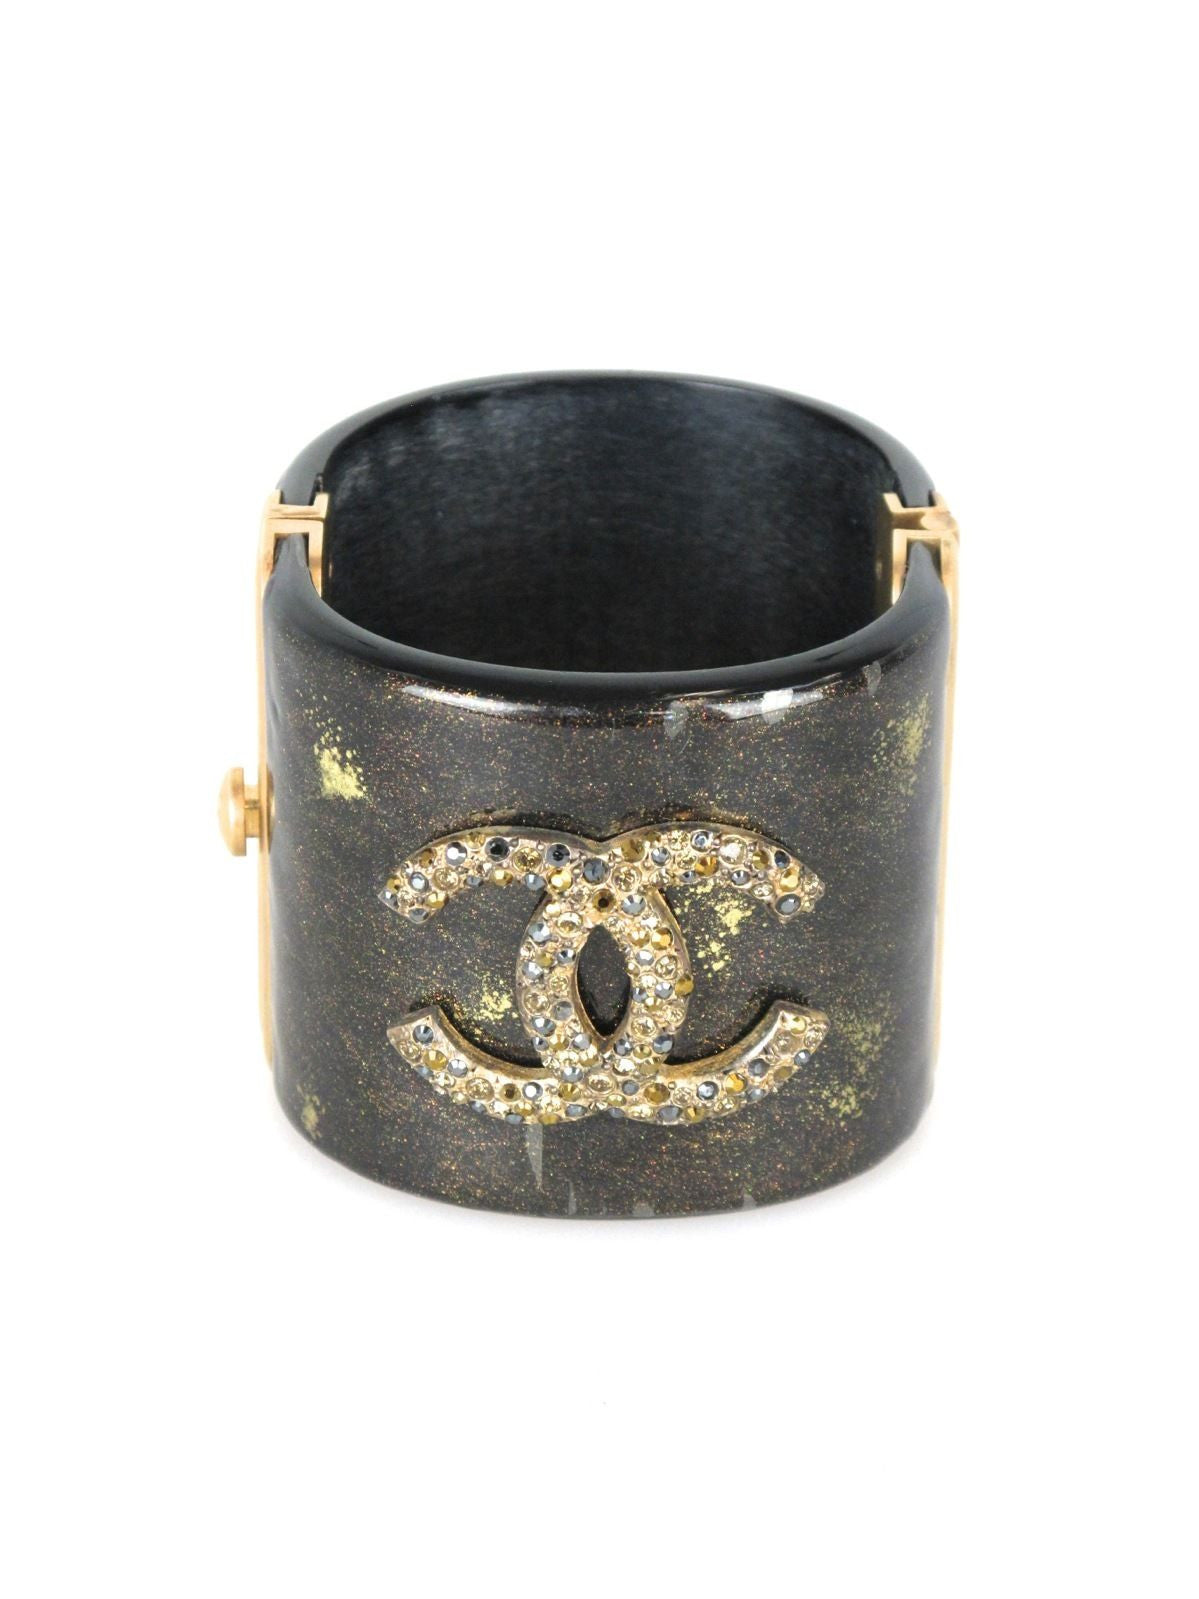 CHANEL Black and Gold Glitter Resin Jeweled Cuff Bracelet 2007 Autumn